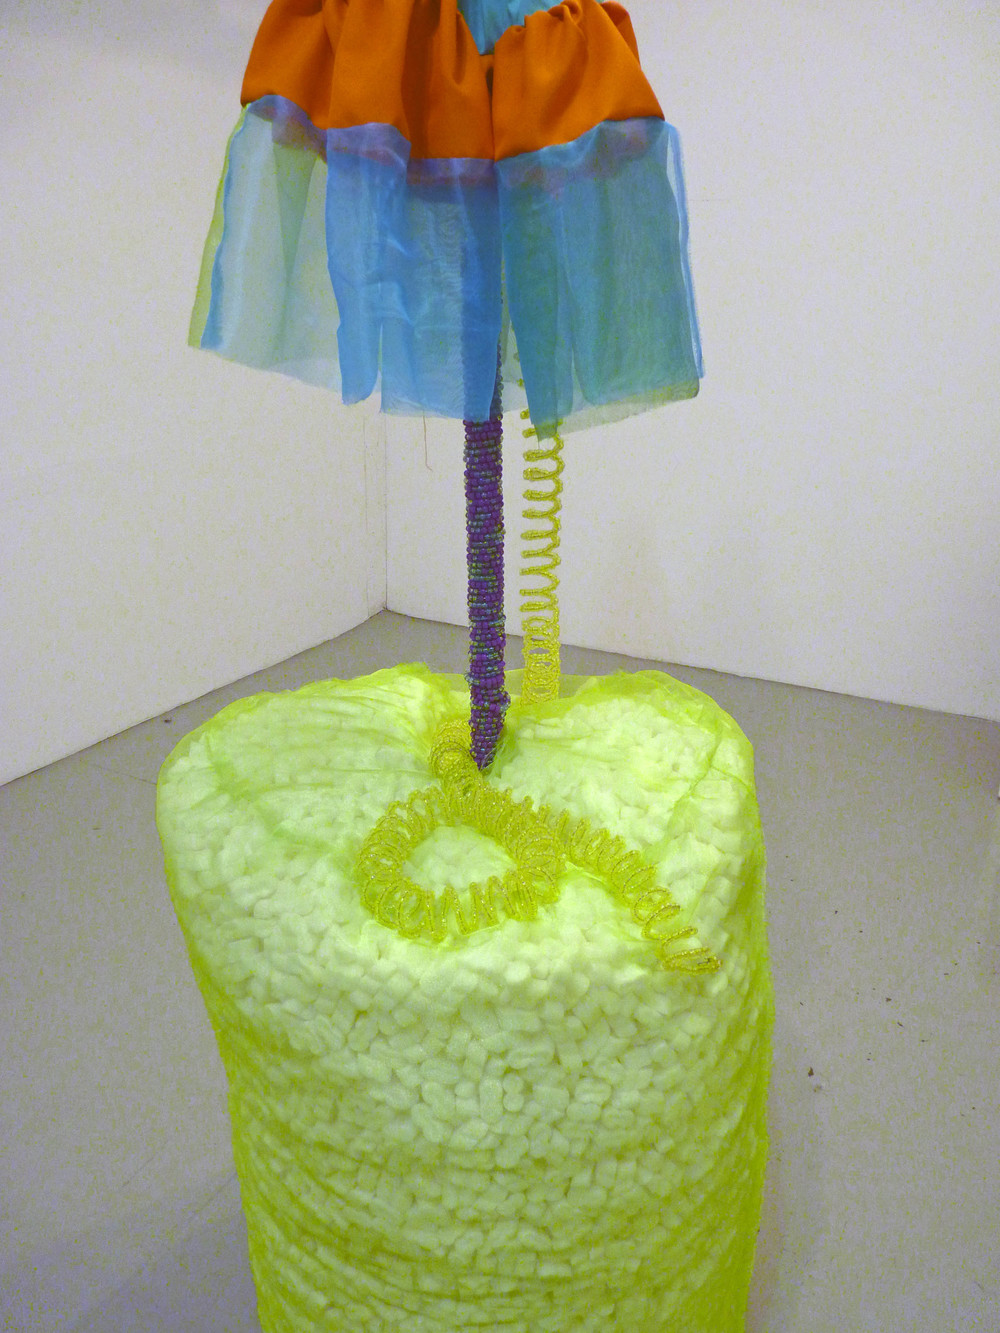 Untitled (Tankini), 2014, Fabric, metal, plastic beads, styrofoam and wood, 3' x 8' (detail)